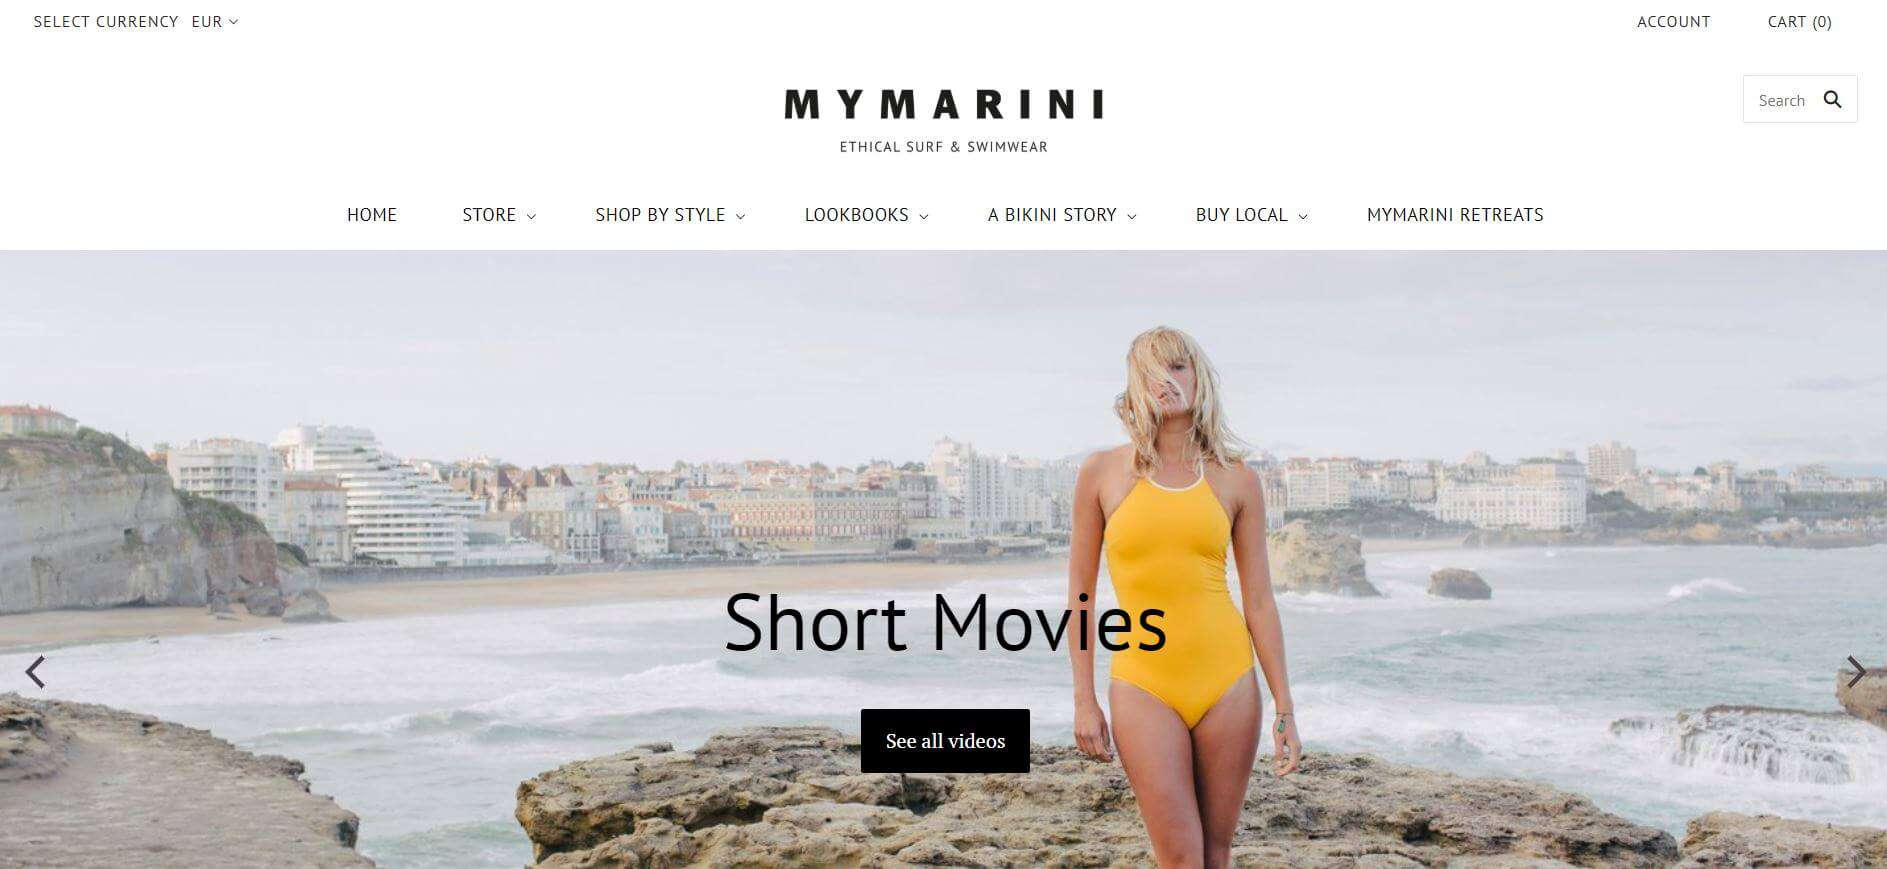 mymarini Screenshot